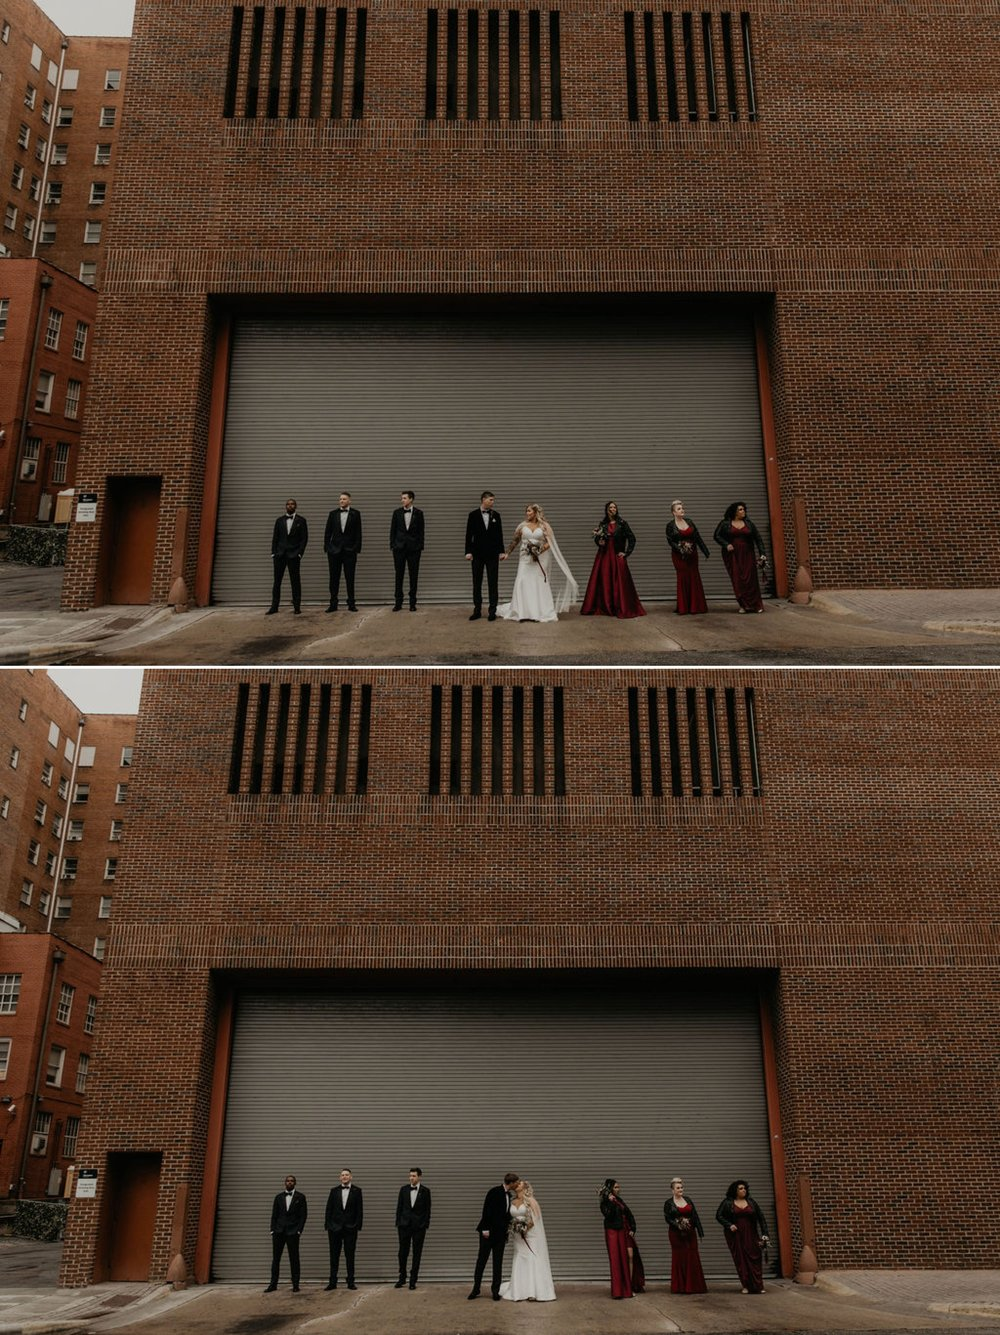 Downtown Wedding Party Portraits - Bride in an Allure Bridals Mermaid Gown - Burgundy Bridesmaids dresses by davids bridal Matt Smarsh and Johanna Dye - suites by the black tux - Raleigh North Carolina Urban Edgy Downtown Wedding - suits by the black tux